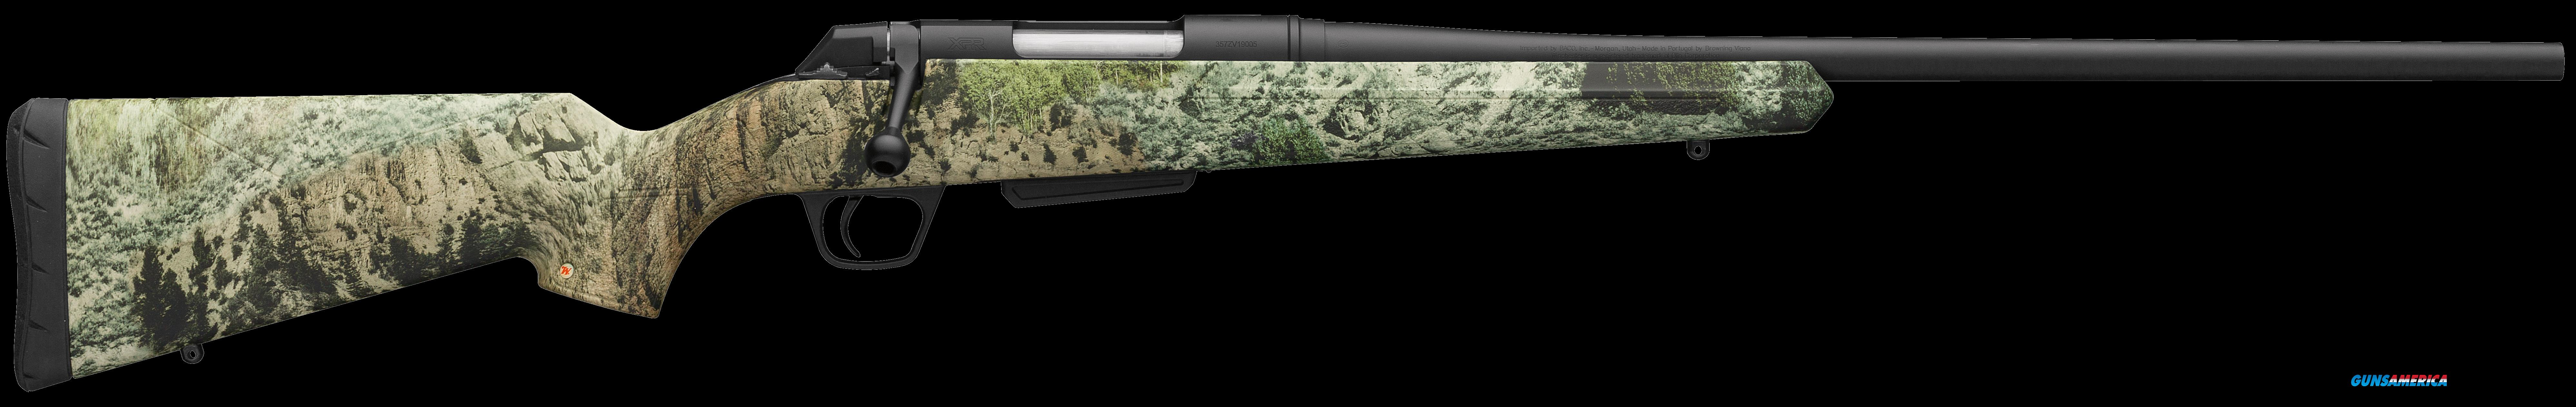 "Winchester Guns 535722230 XPR Hunter MCR Bolt 7mm Remington Magnum 26"" 3+1 Synthetic Mossy Oak  Guns > Rifles > Winchester Rifles - Modern Bolt/Auto/Single > Other Bolt Action"